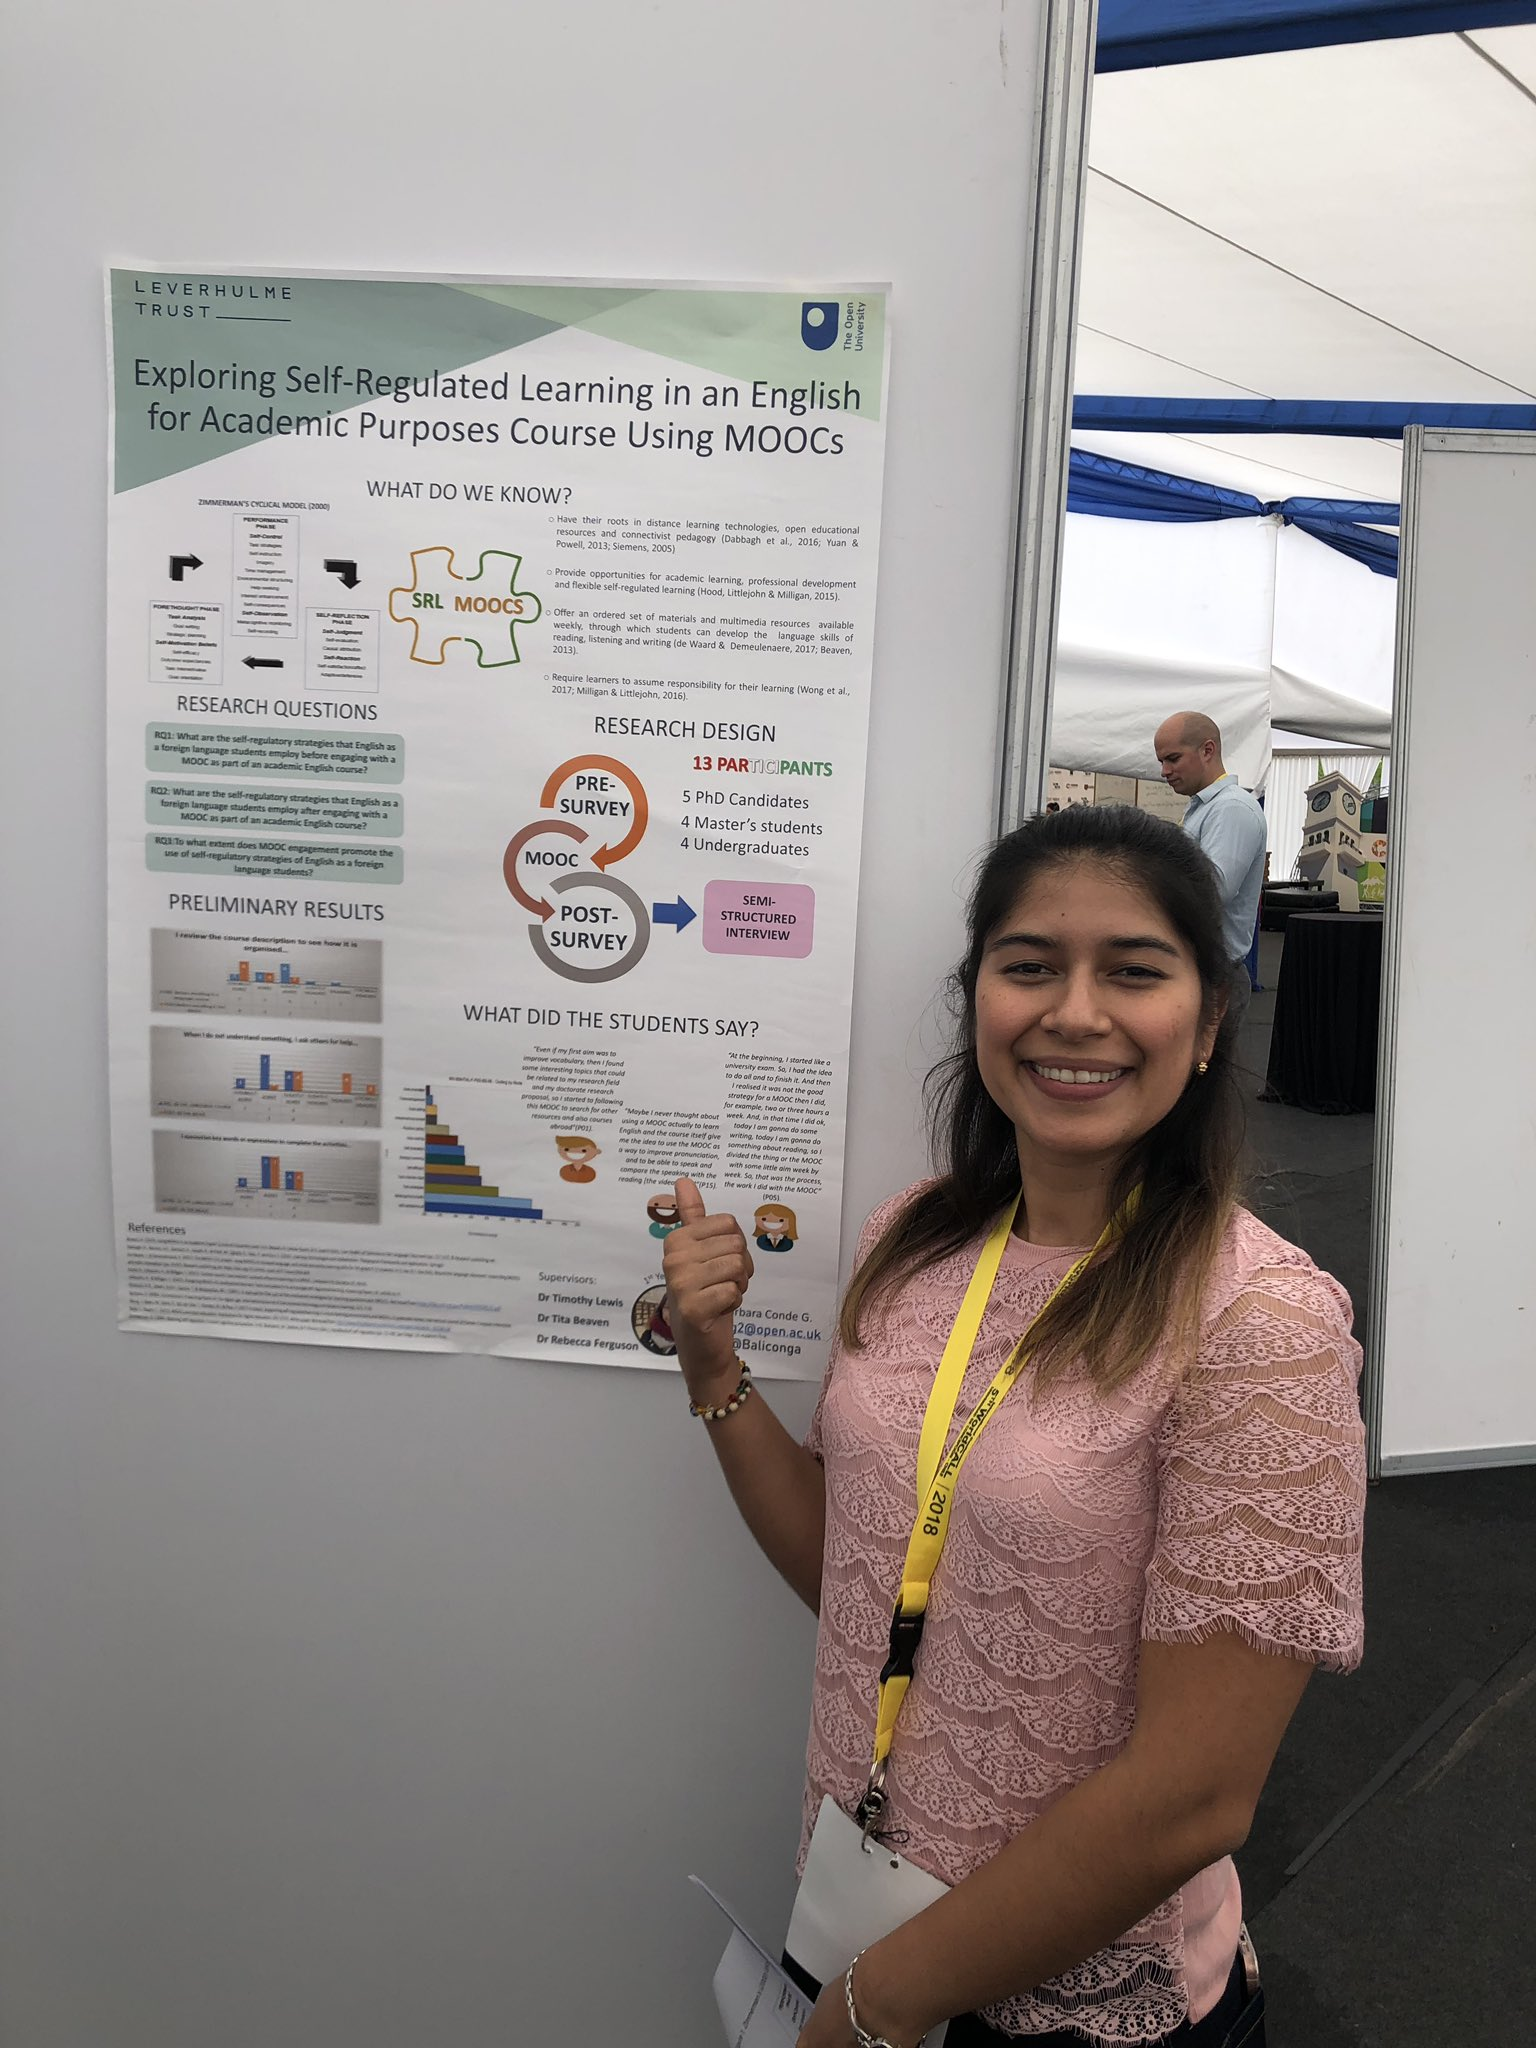 Here's Barbara Conde presenting her poster on self-regulated learning in an #EAP course using MOOCs at #WorldCALL2018 https://t.co/e6VIkCtns3